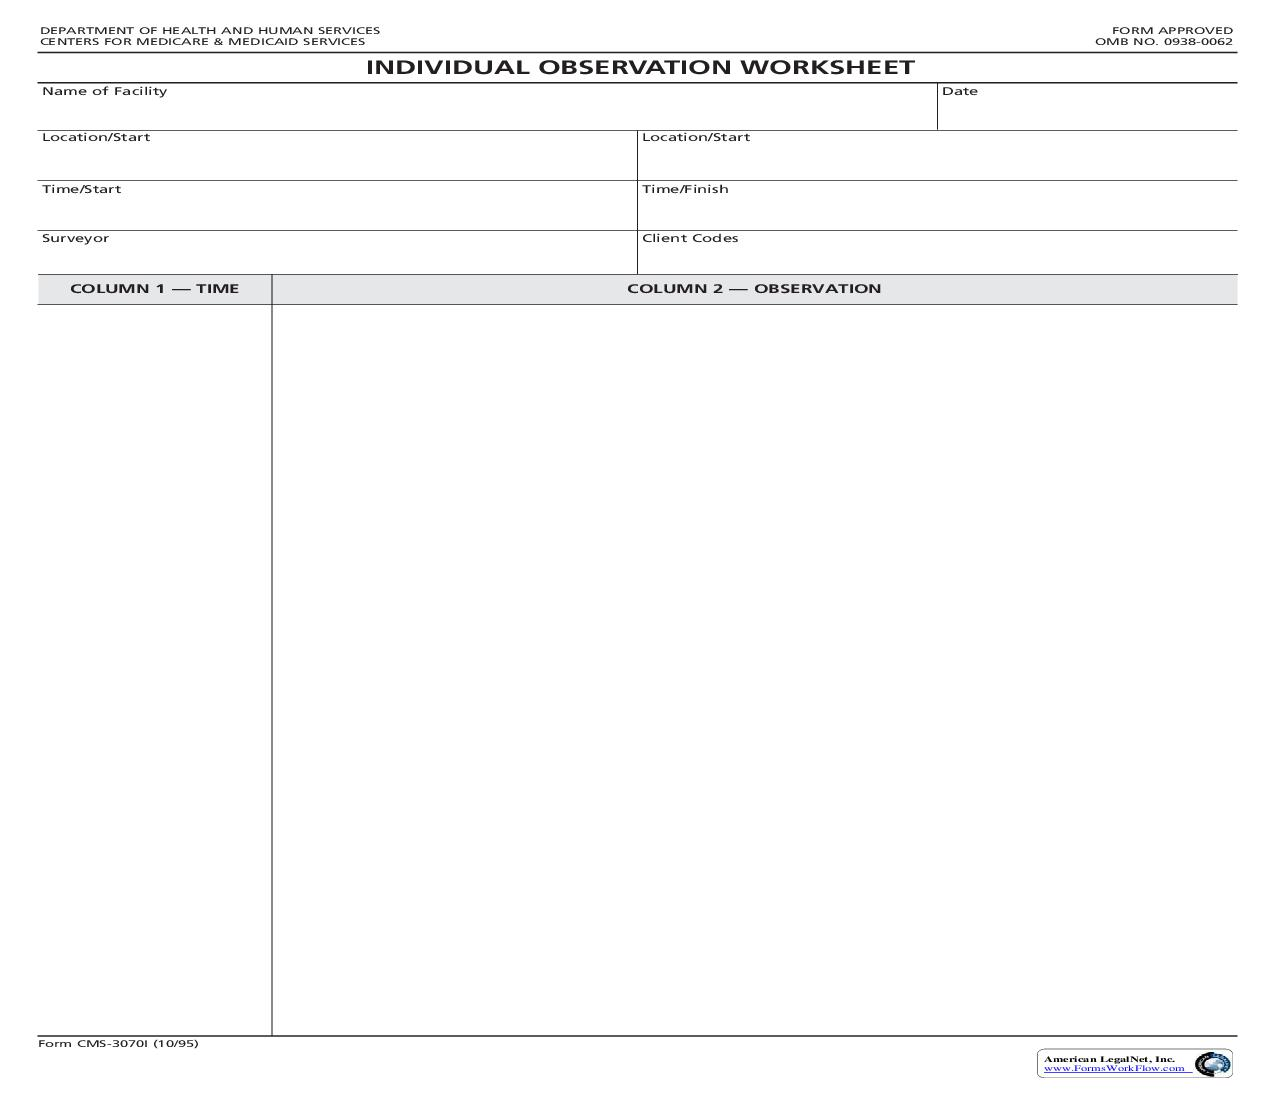 Individual Observation Worksheet {CMS-3070I} | Pdf Fpdf Doc Docx | Official Federal Forms